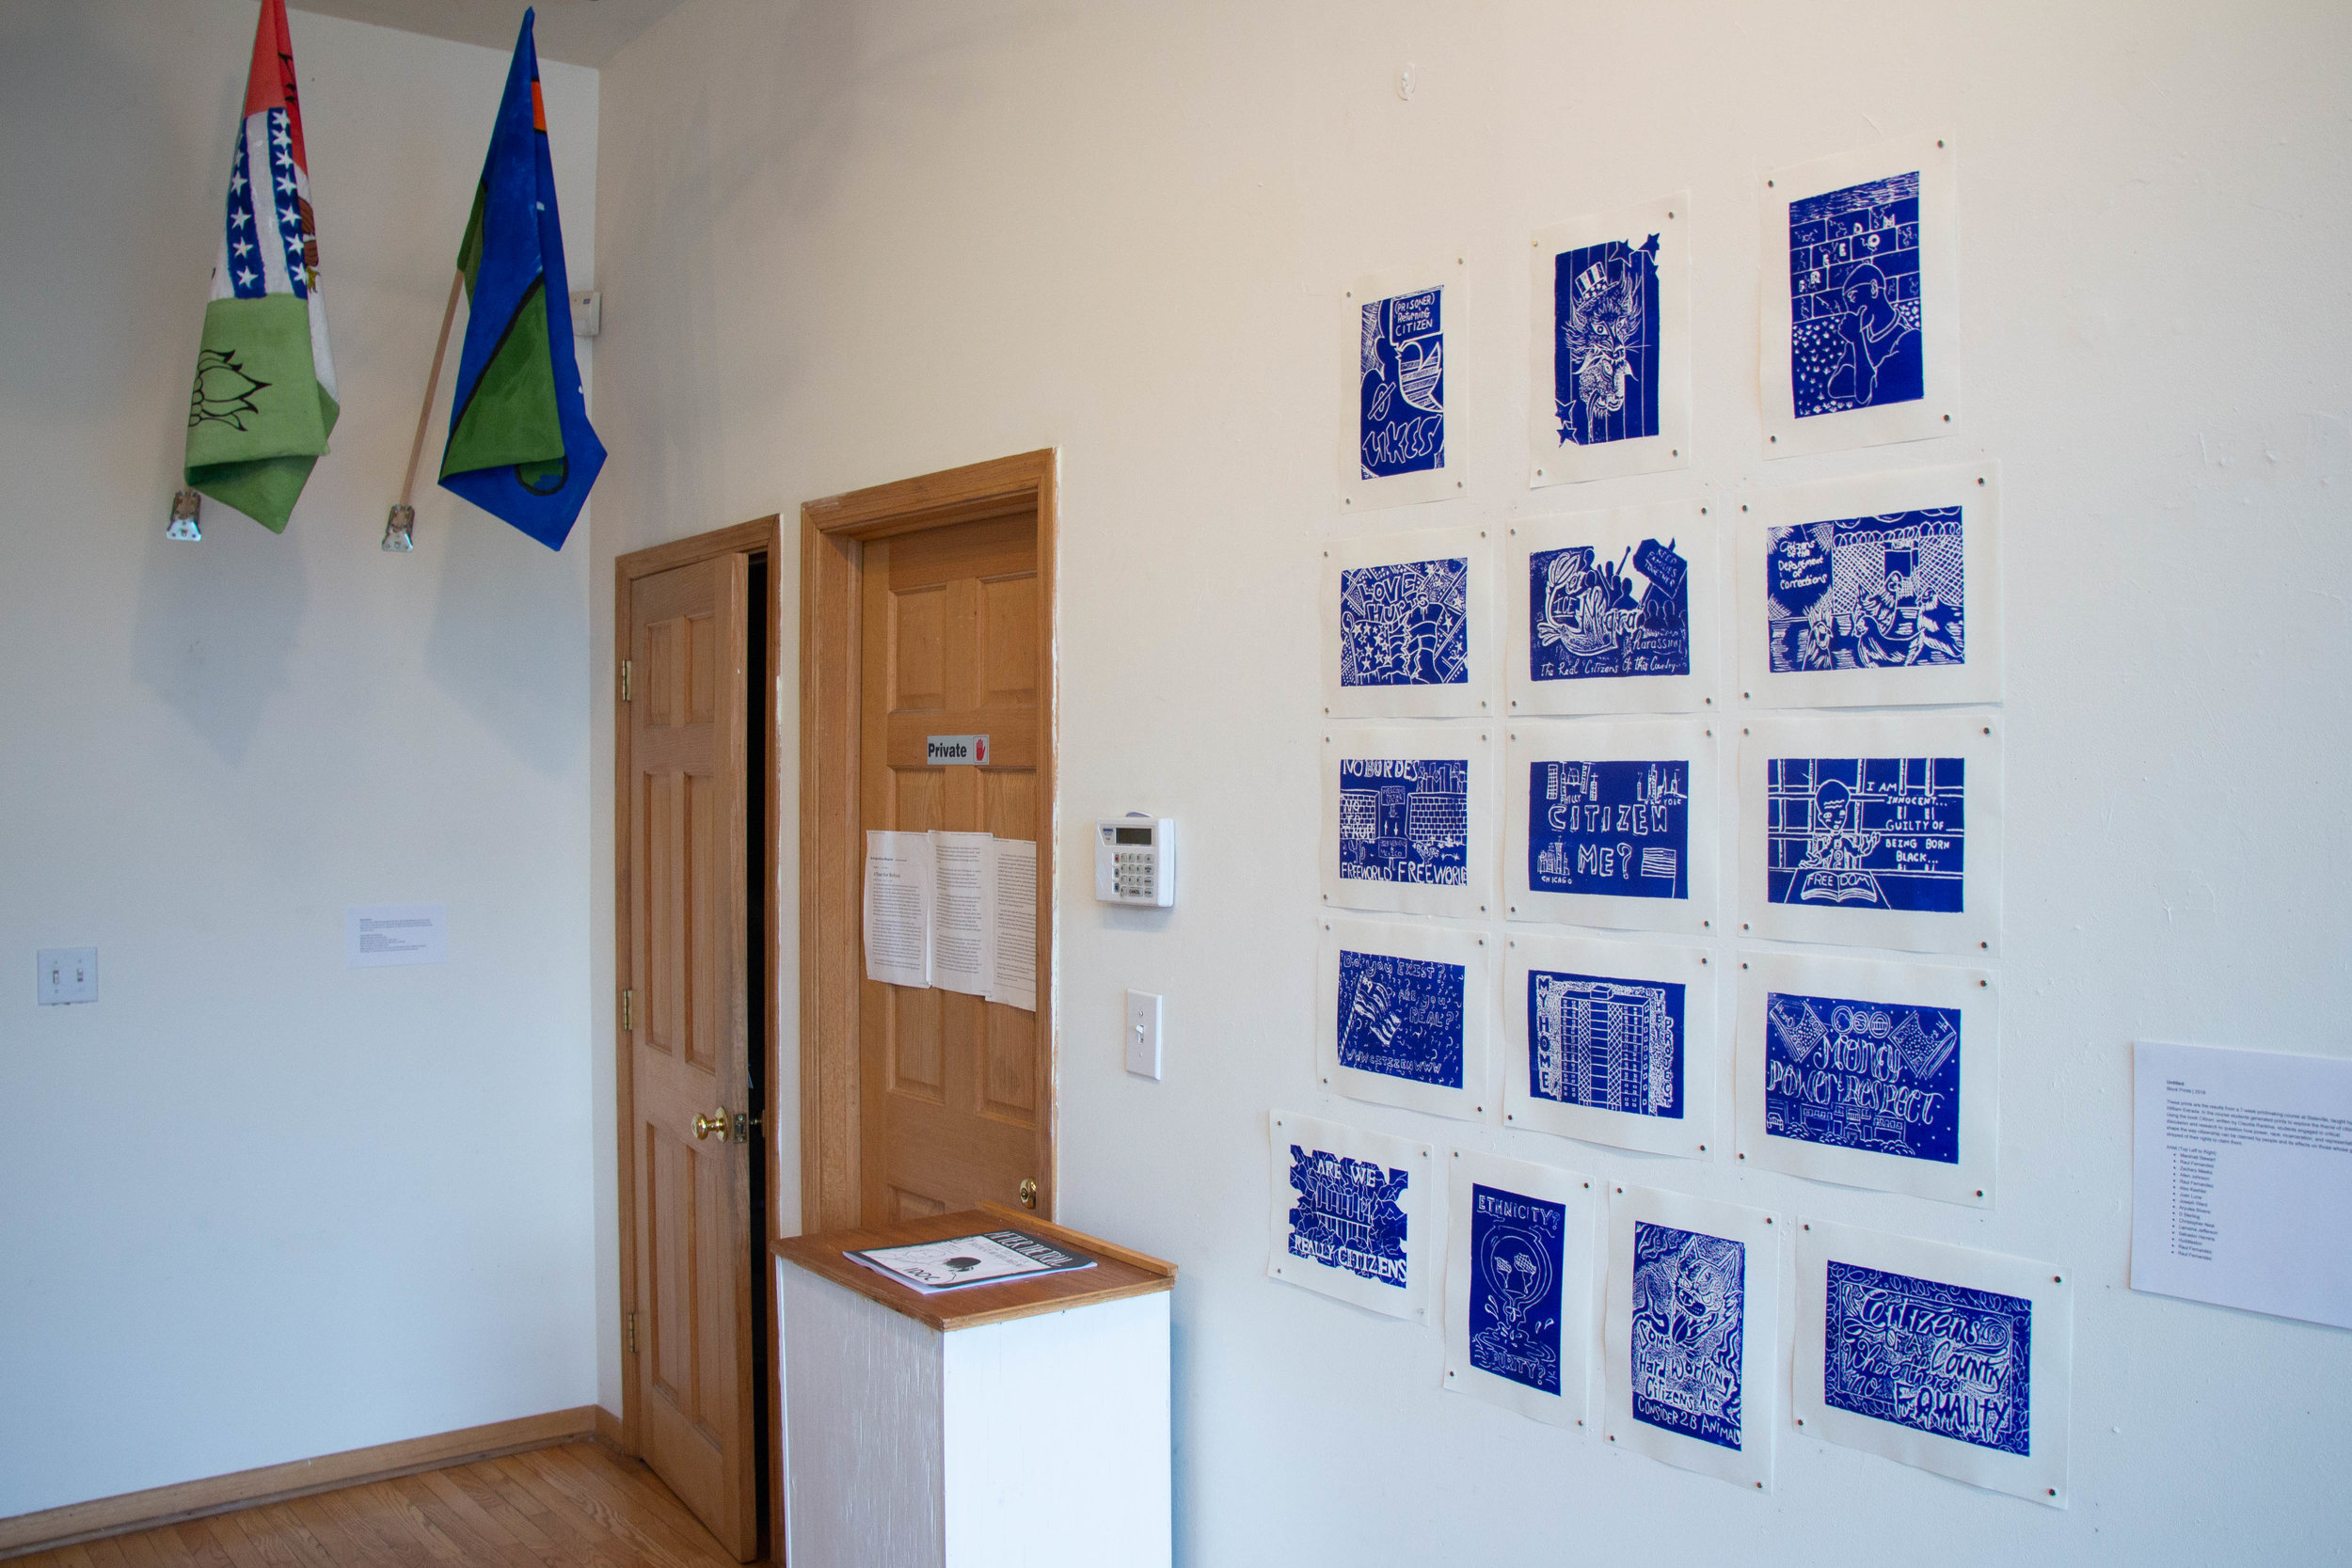 Flags and prints from PNAP classes are displayed at the Uri-Eichen Gallery.